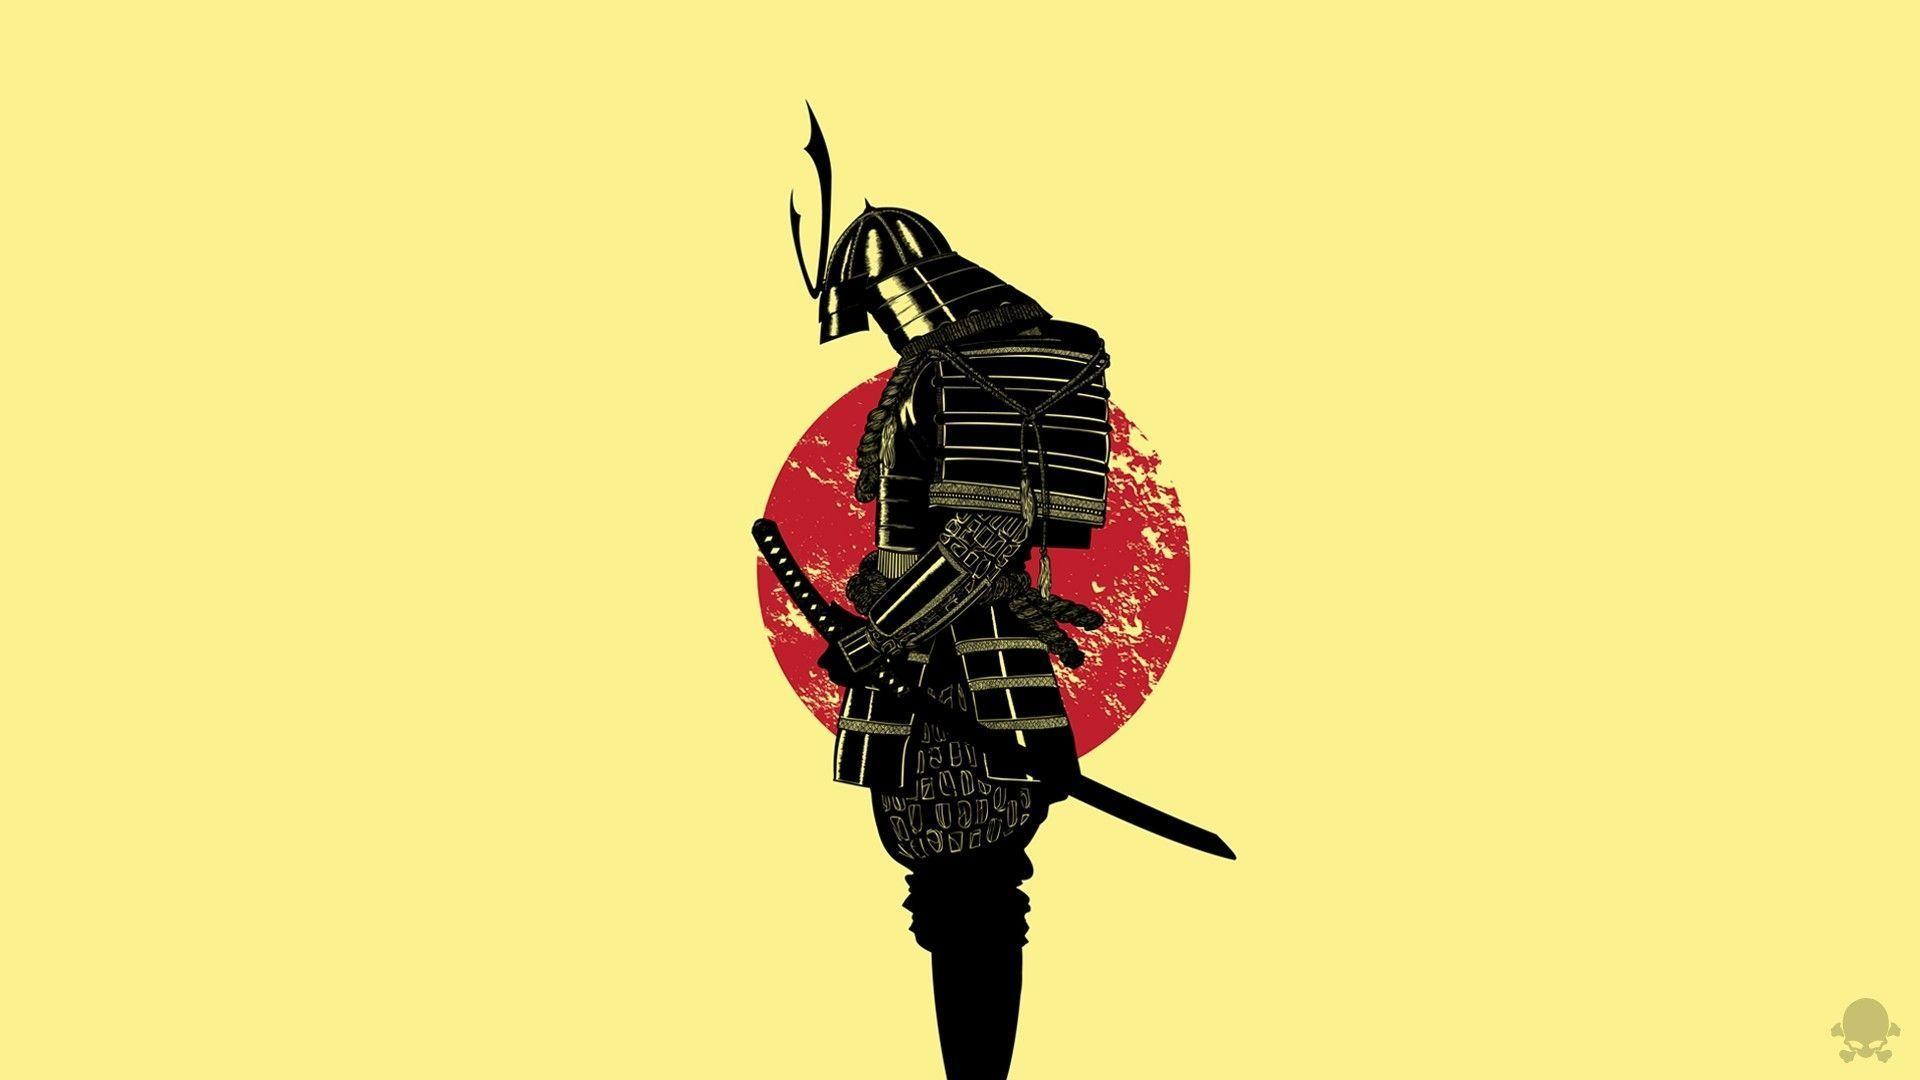 samurai katana wallpaper hd - photo #38